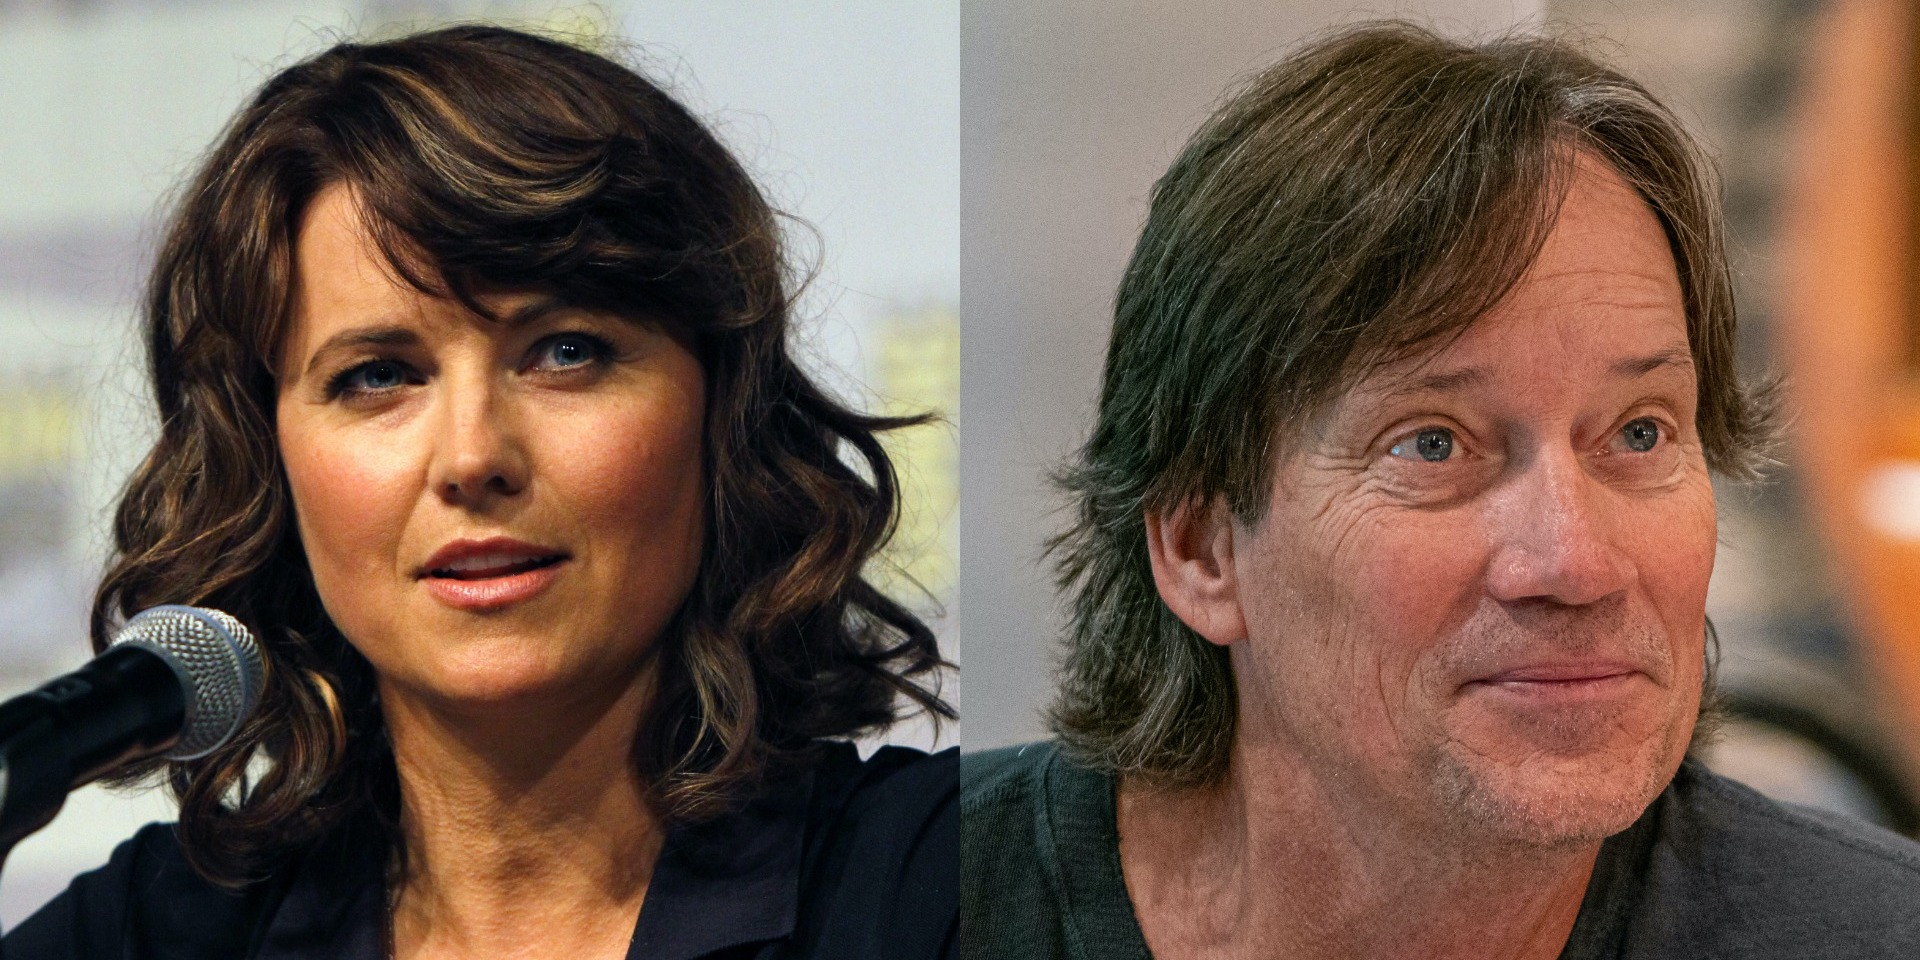 'Xena' actress Lucy Lawless claps back at former co-star Kevin Sorbo for his Capitol riot tweets